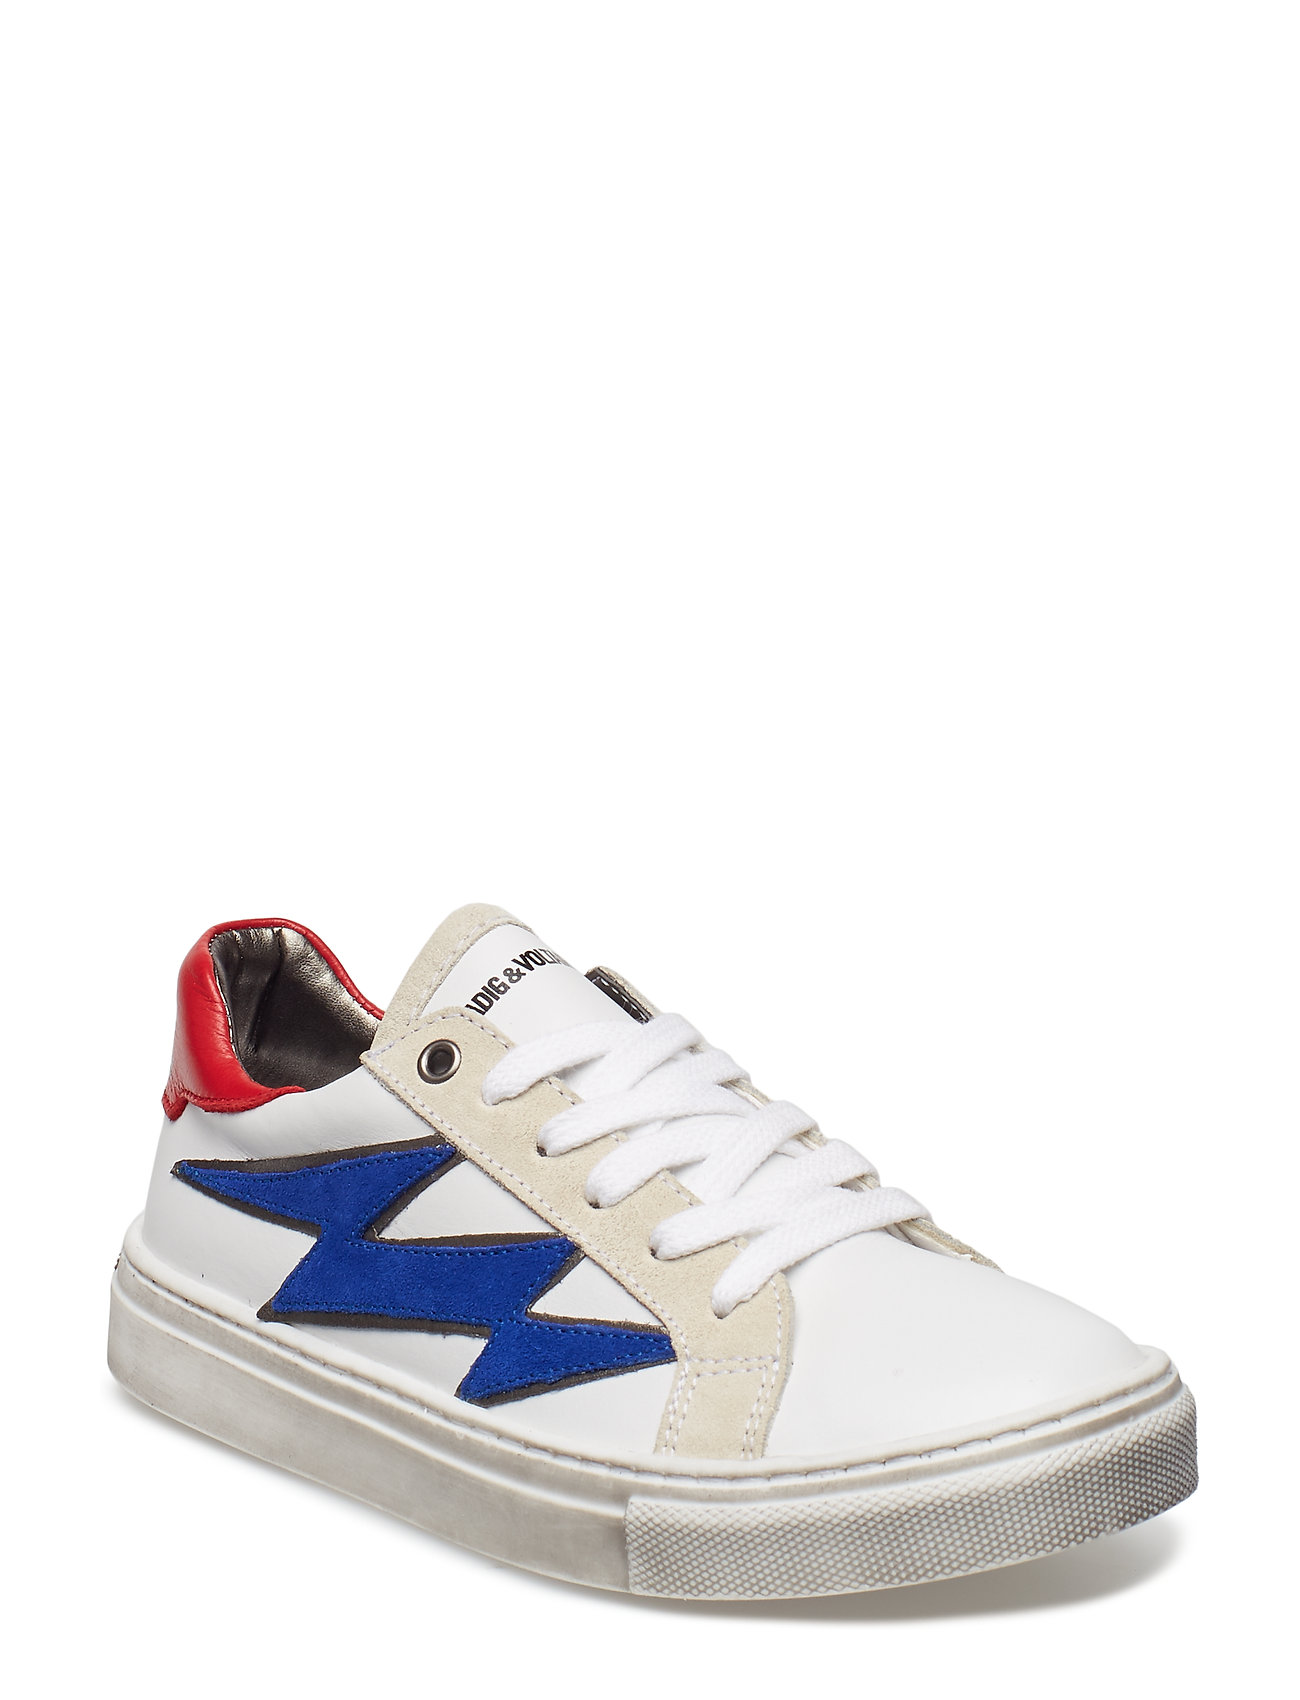 Zadig & Voltaire Kids TRAINERS - WHITE